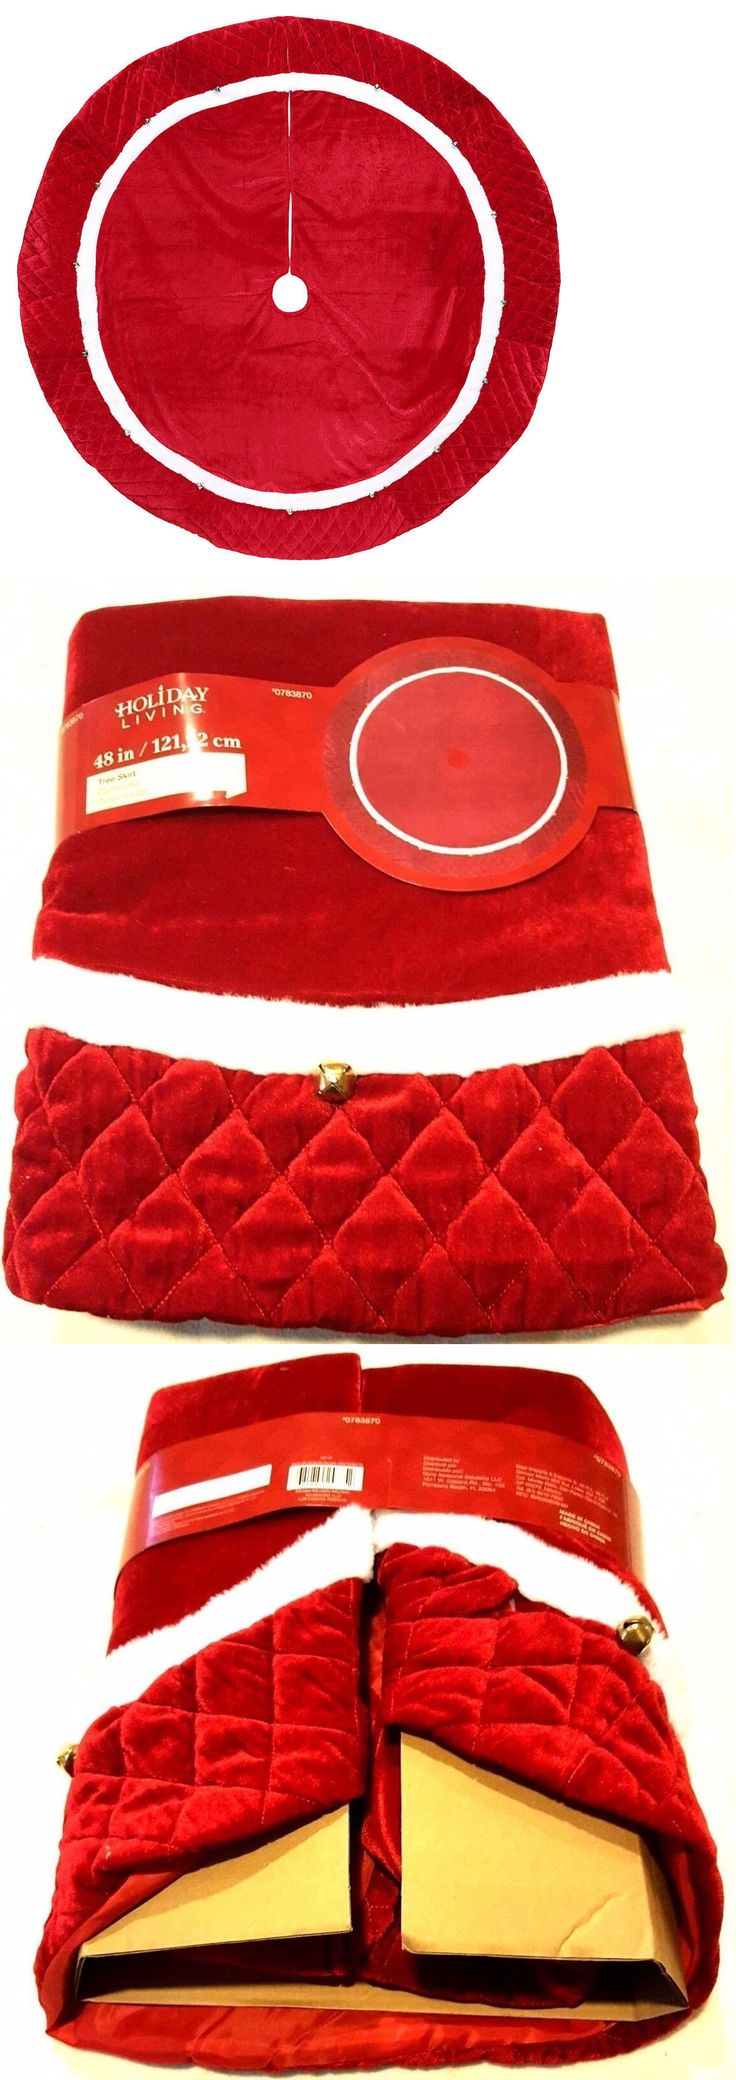 Tree Stands Skirts and Storage 166726: Holiday Living 48 Plush Red Velvet Traditional Christmas Tree Skirt W Bells -> BUY IT NOW ONLY: $39.95 on eBay!